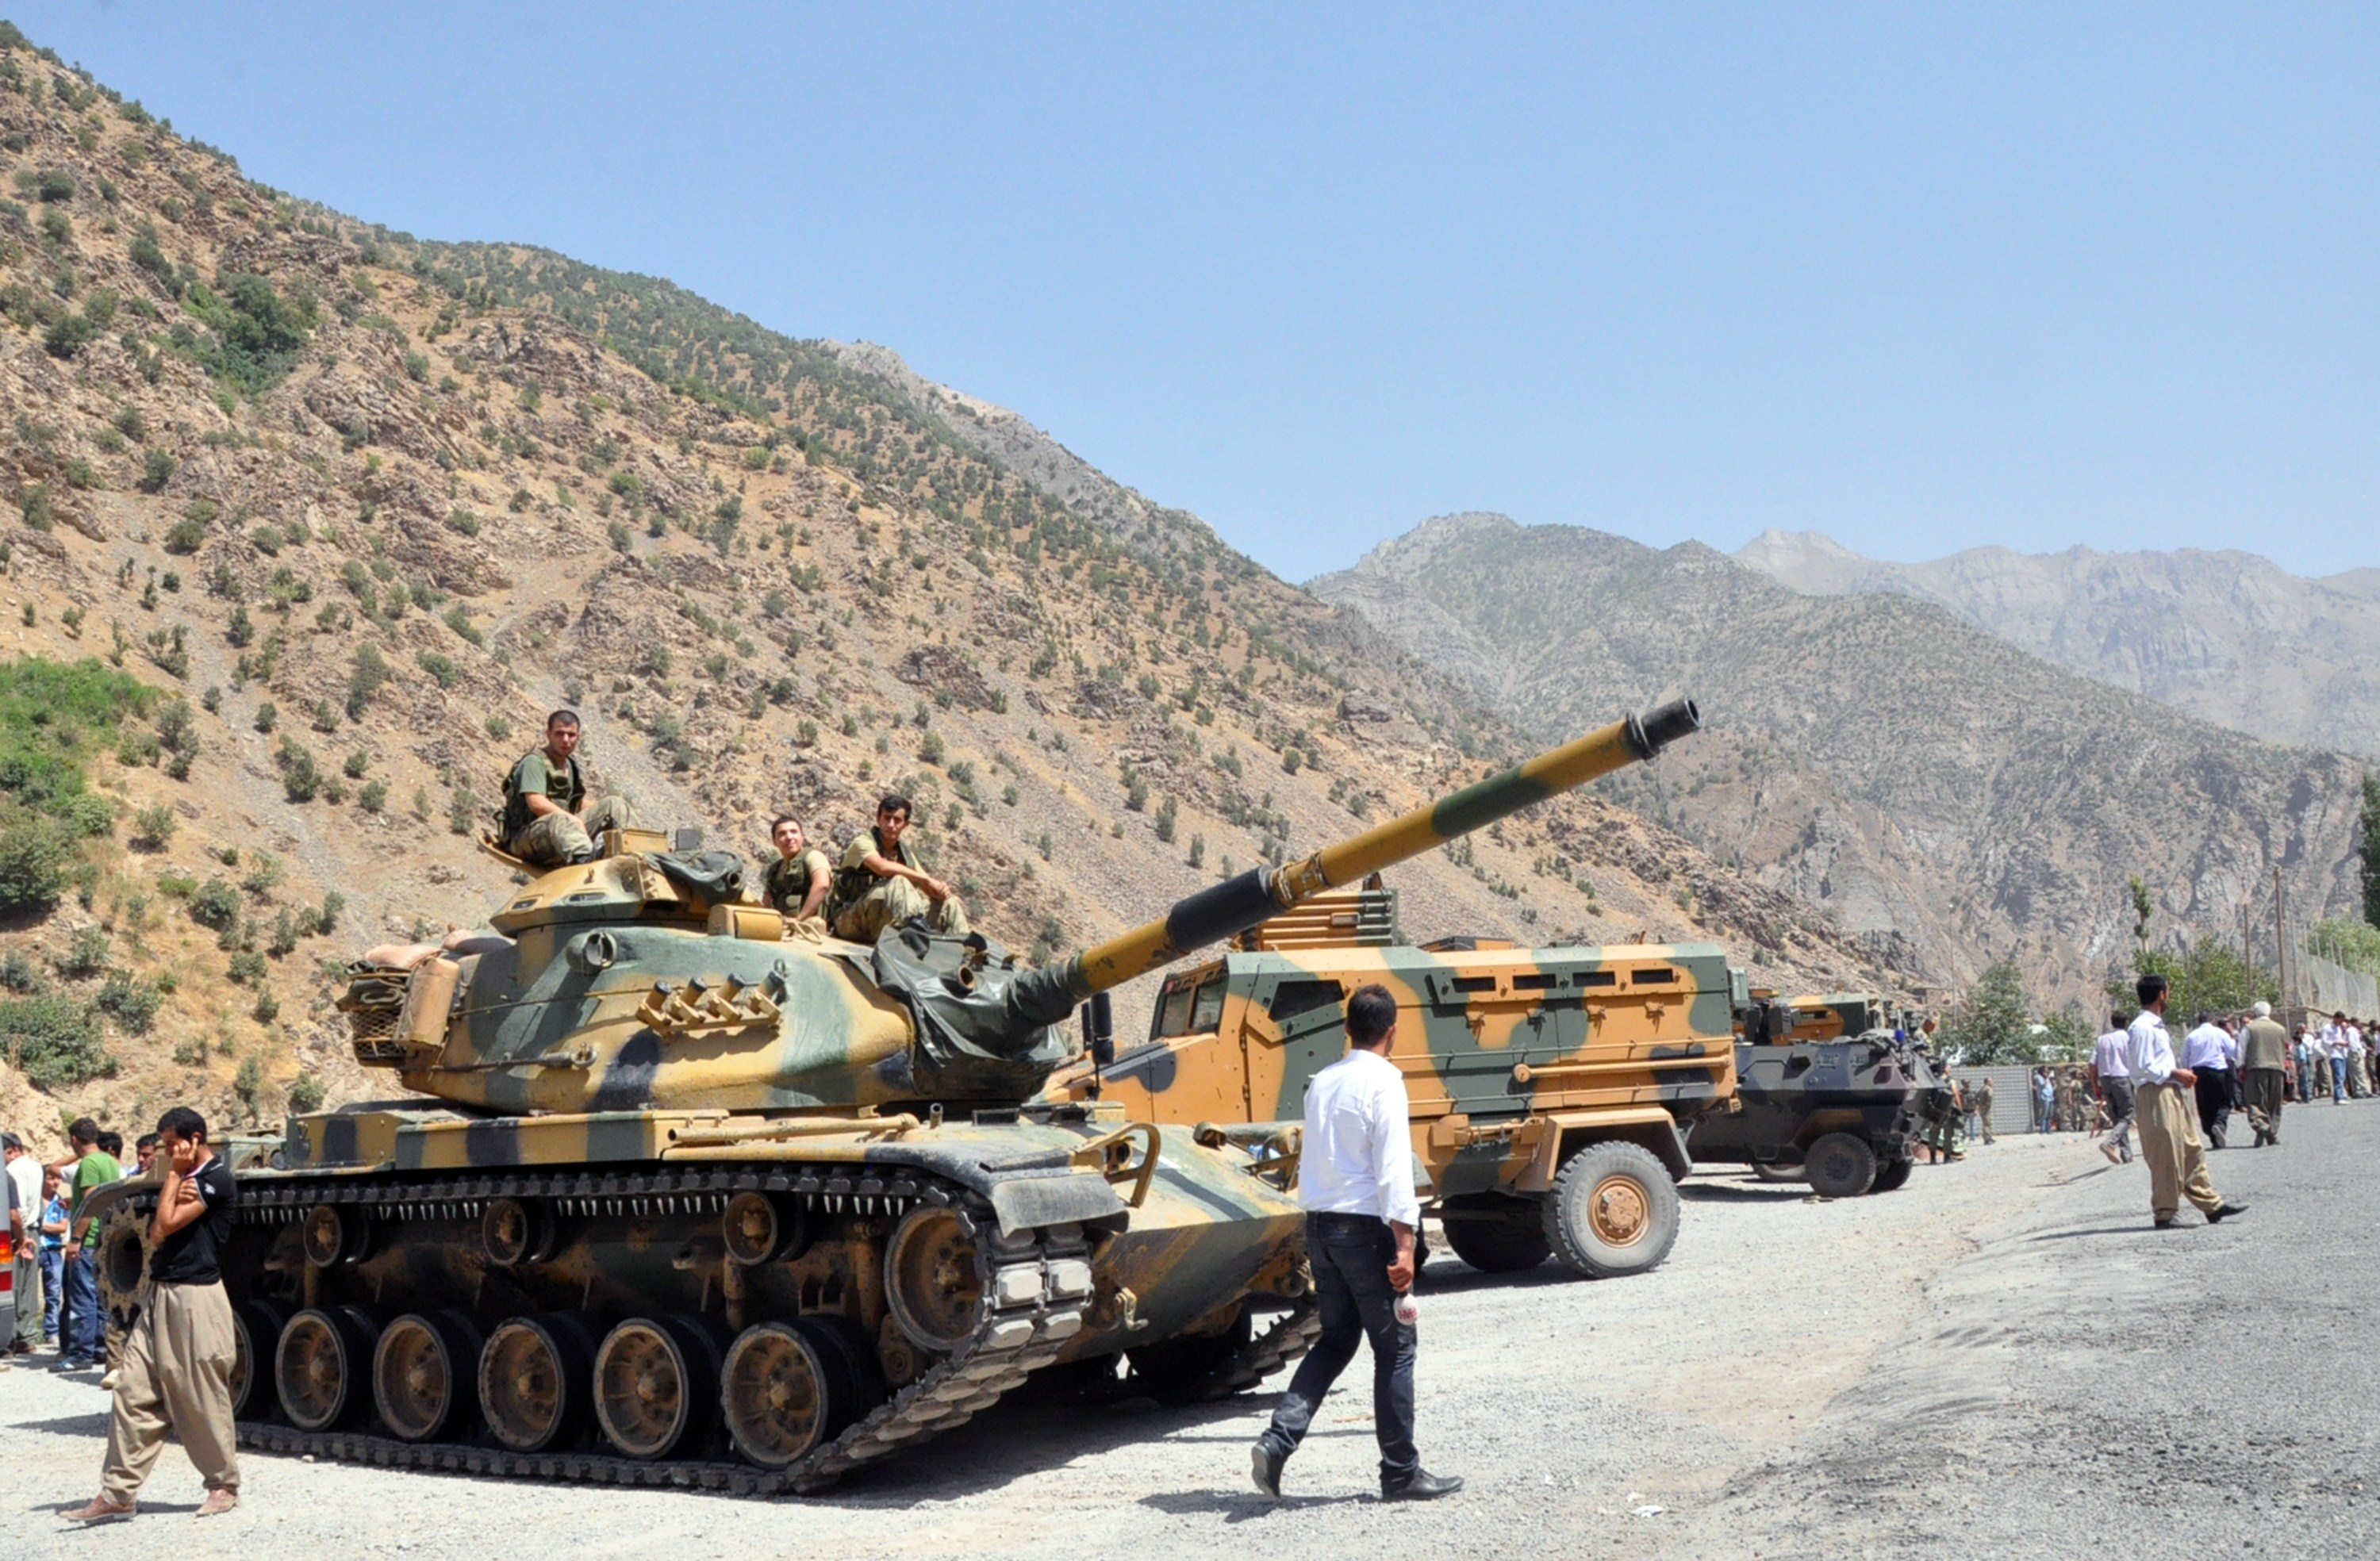 Heavy armoured vehicles of Turkish military are stationed in front of Gecimli military outpost where Kurdish rebels attacked and killed 6 soldiers and 2 village guard on 5 August AFP PHOTO/STR